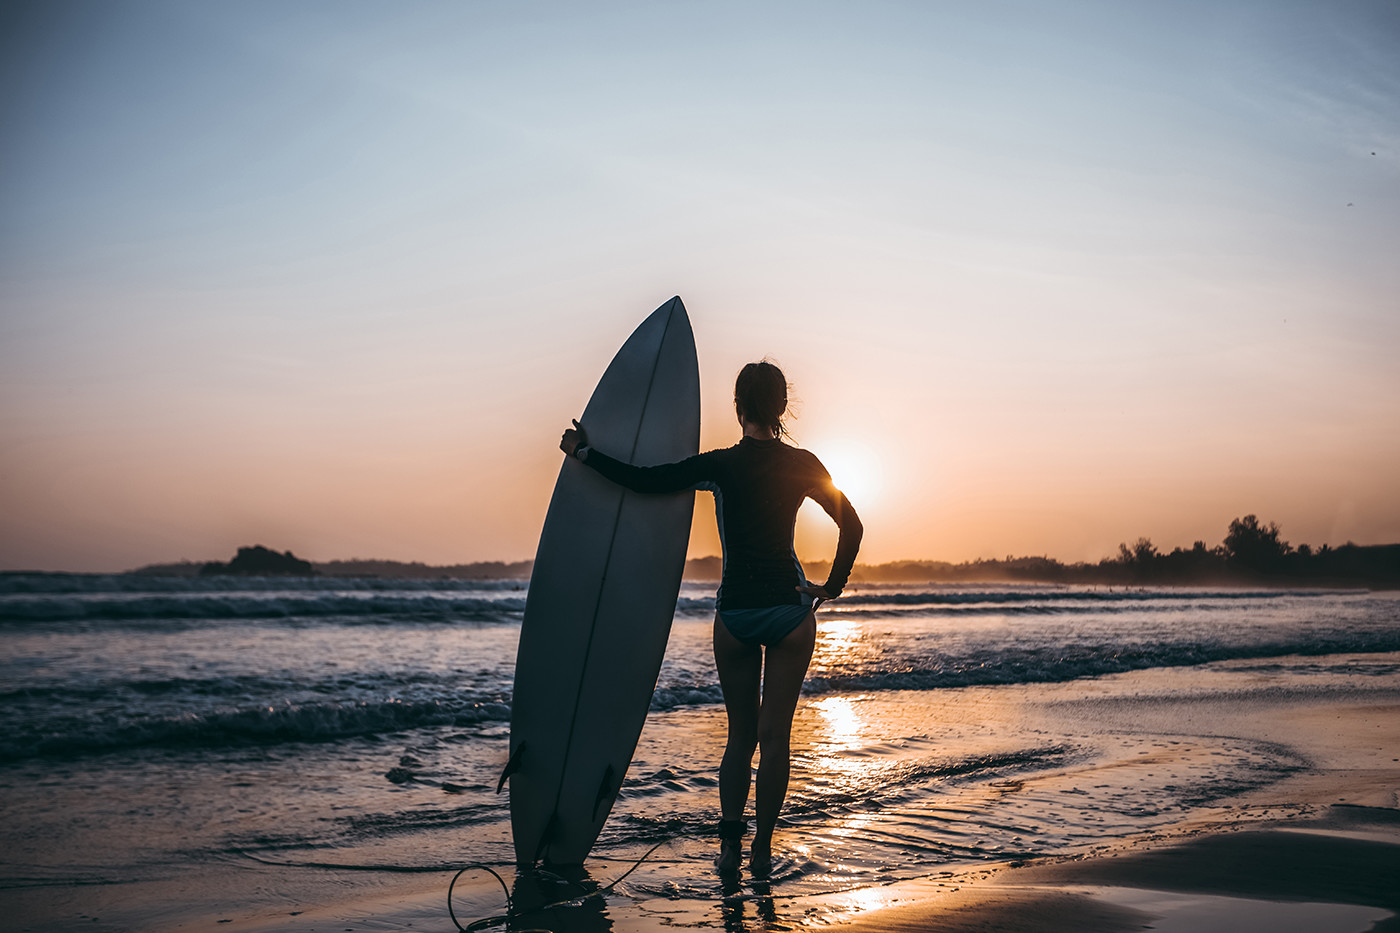 Woman surfer with surfboard ready to surf on a beach